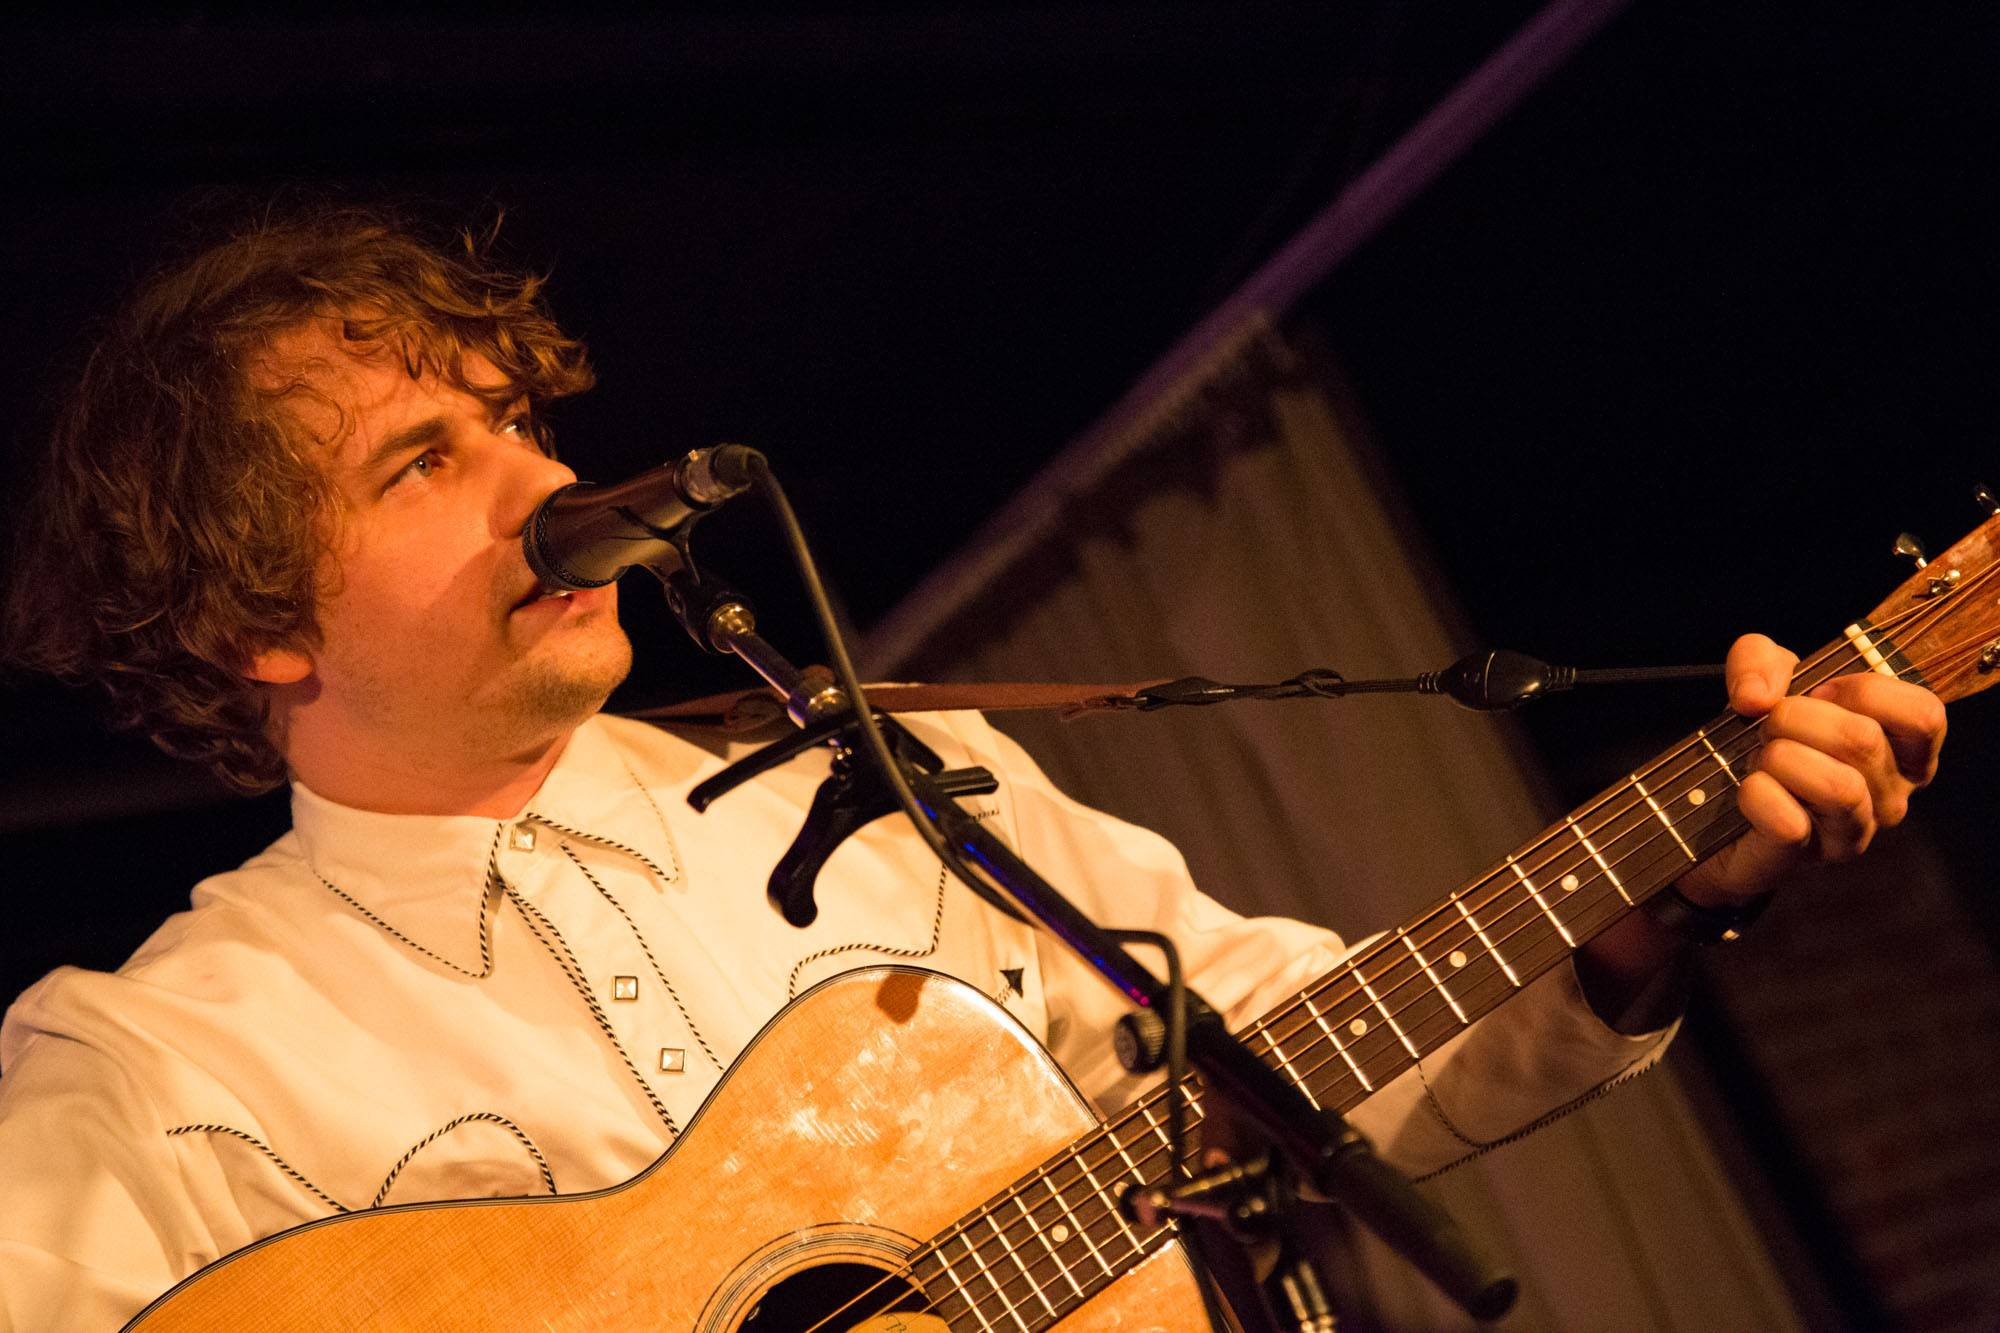 Kevin Morby at the Electric Owl, Vancouver, Feb. 21 2015. Kirk Chantraine photo.